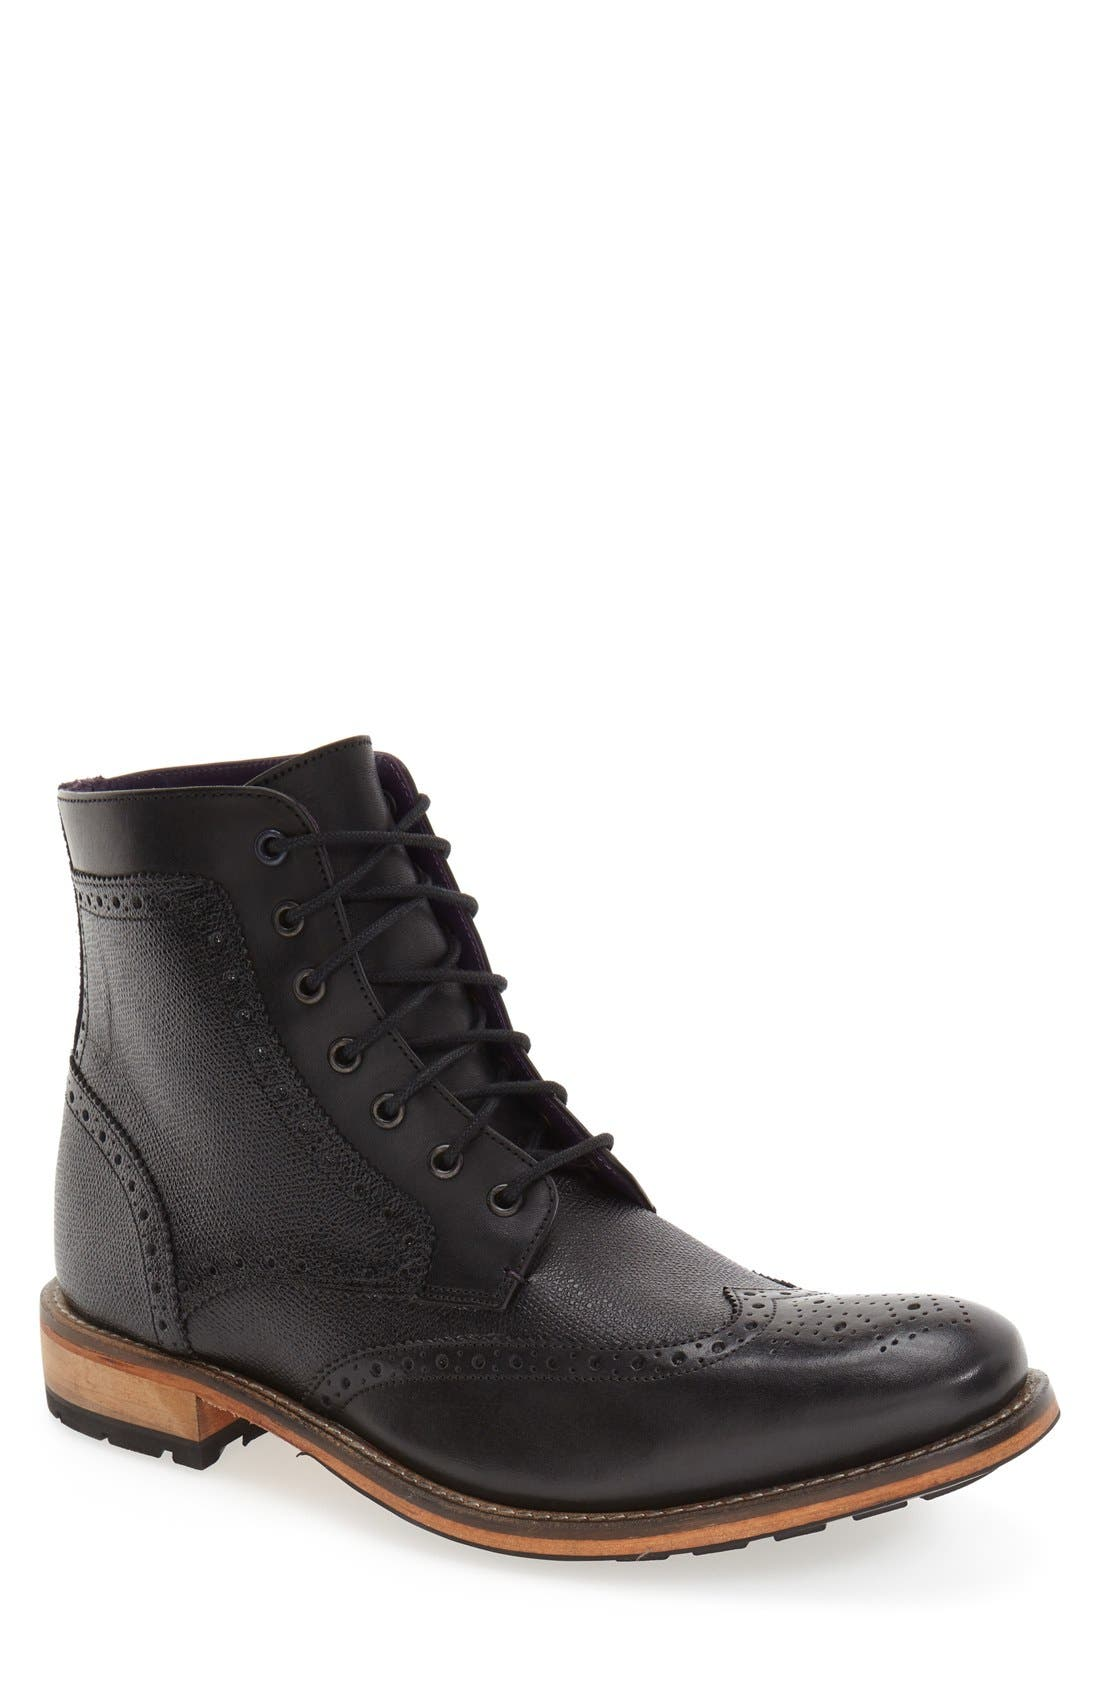 'Sealls 3' Wingtip Boot,                             Main thumbnail 1, color,                             001